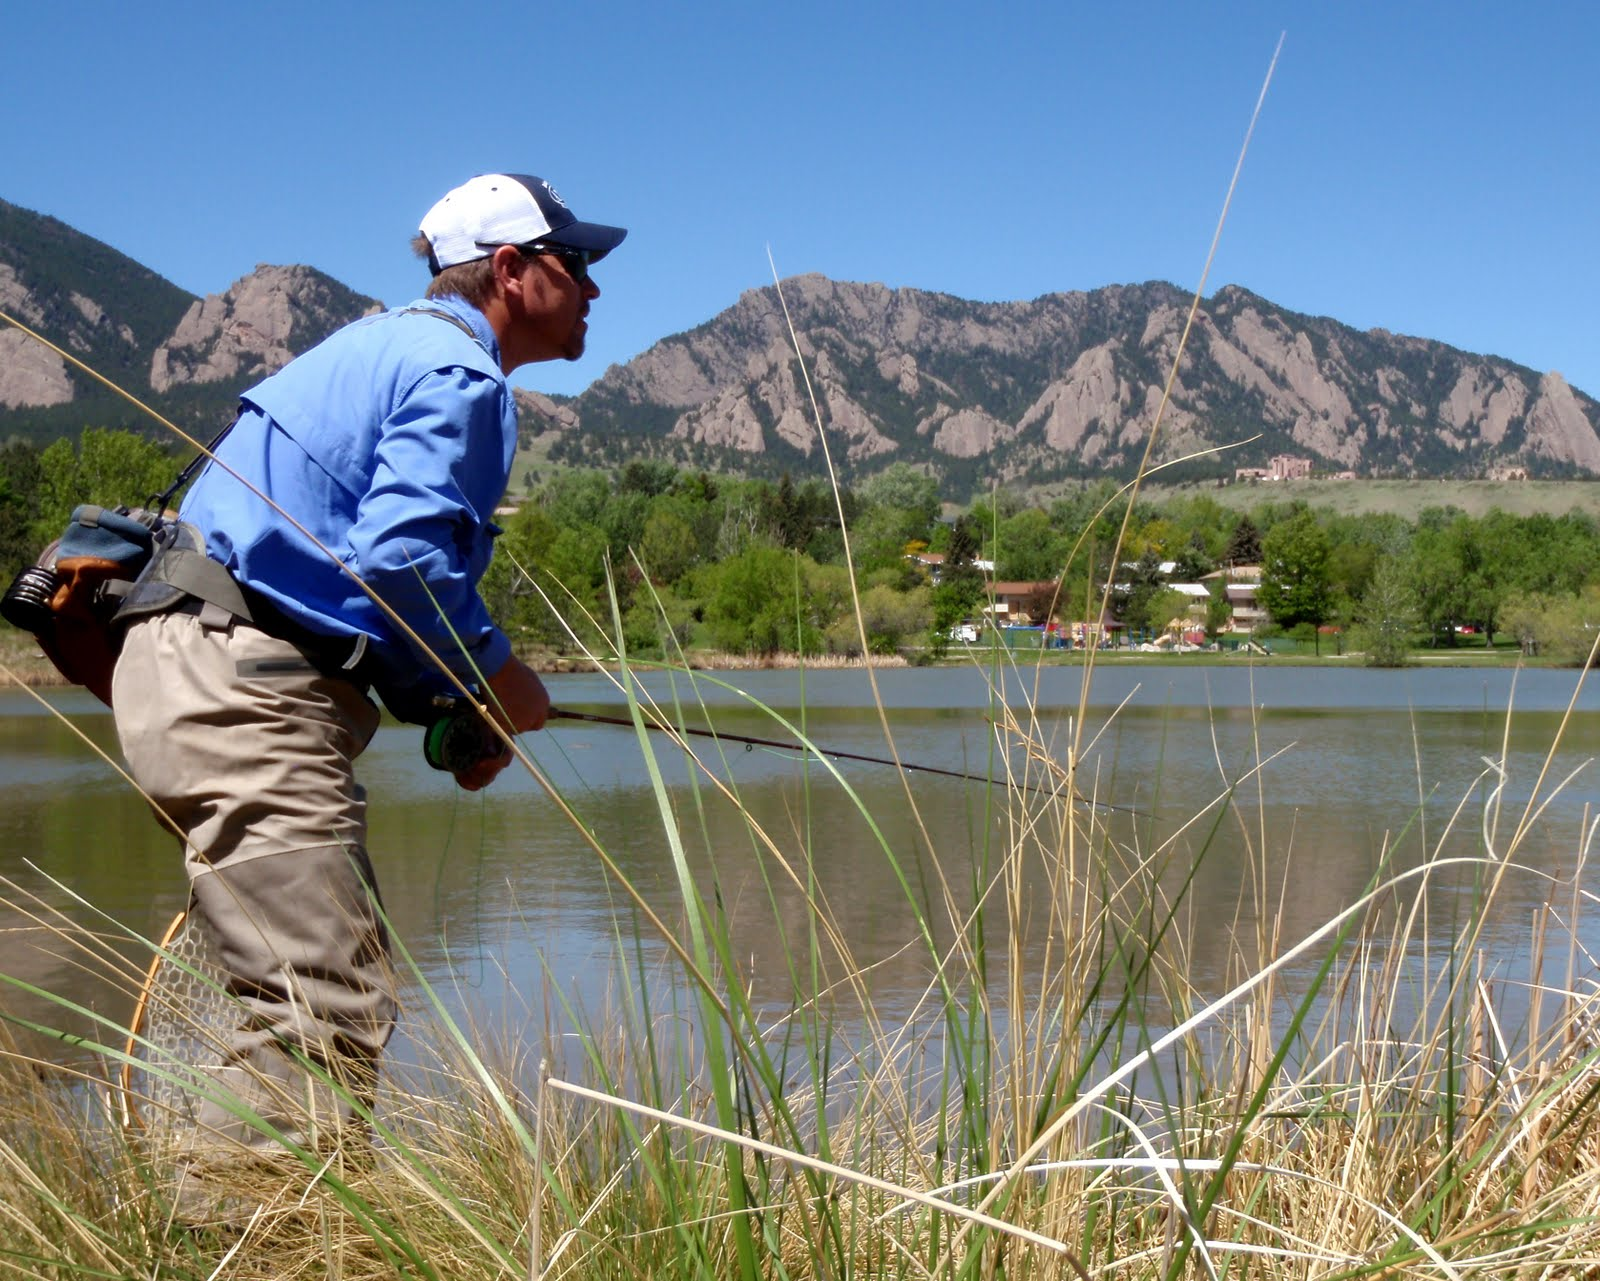 Colorado fly fishing reports nothin but blue skies for Boulder fly fishing